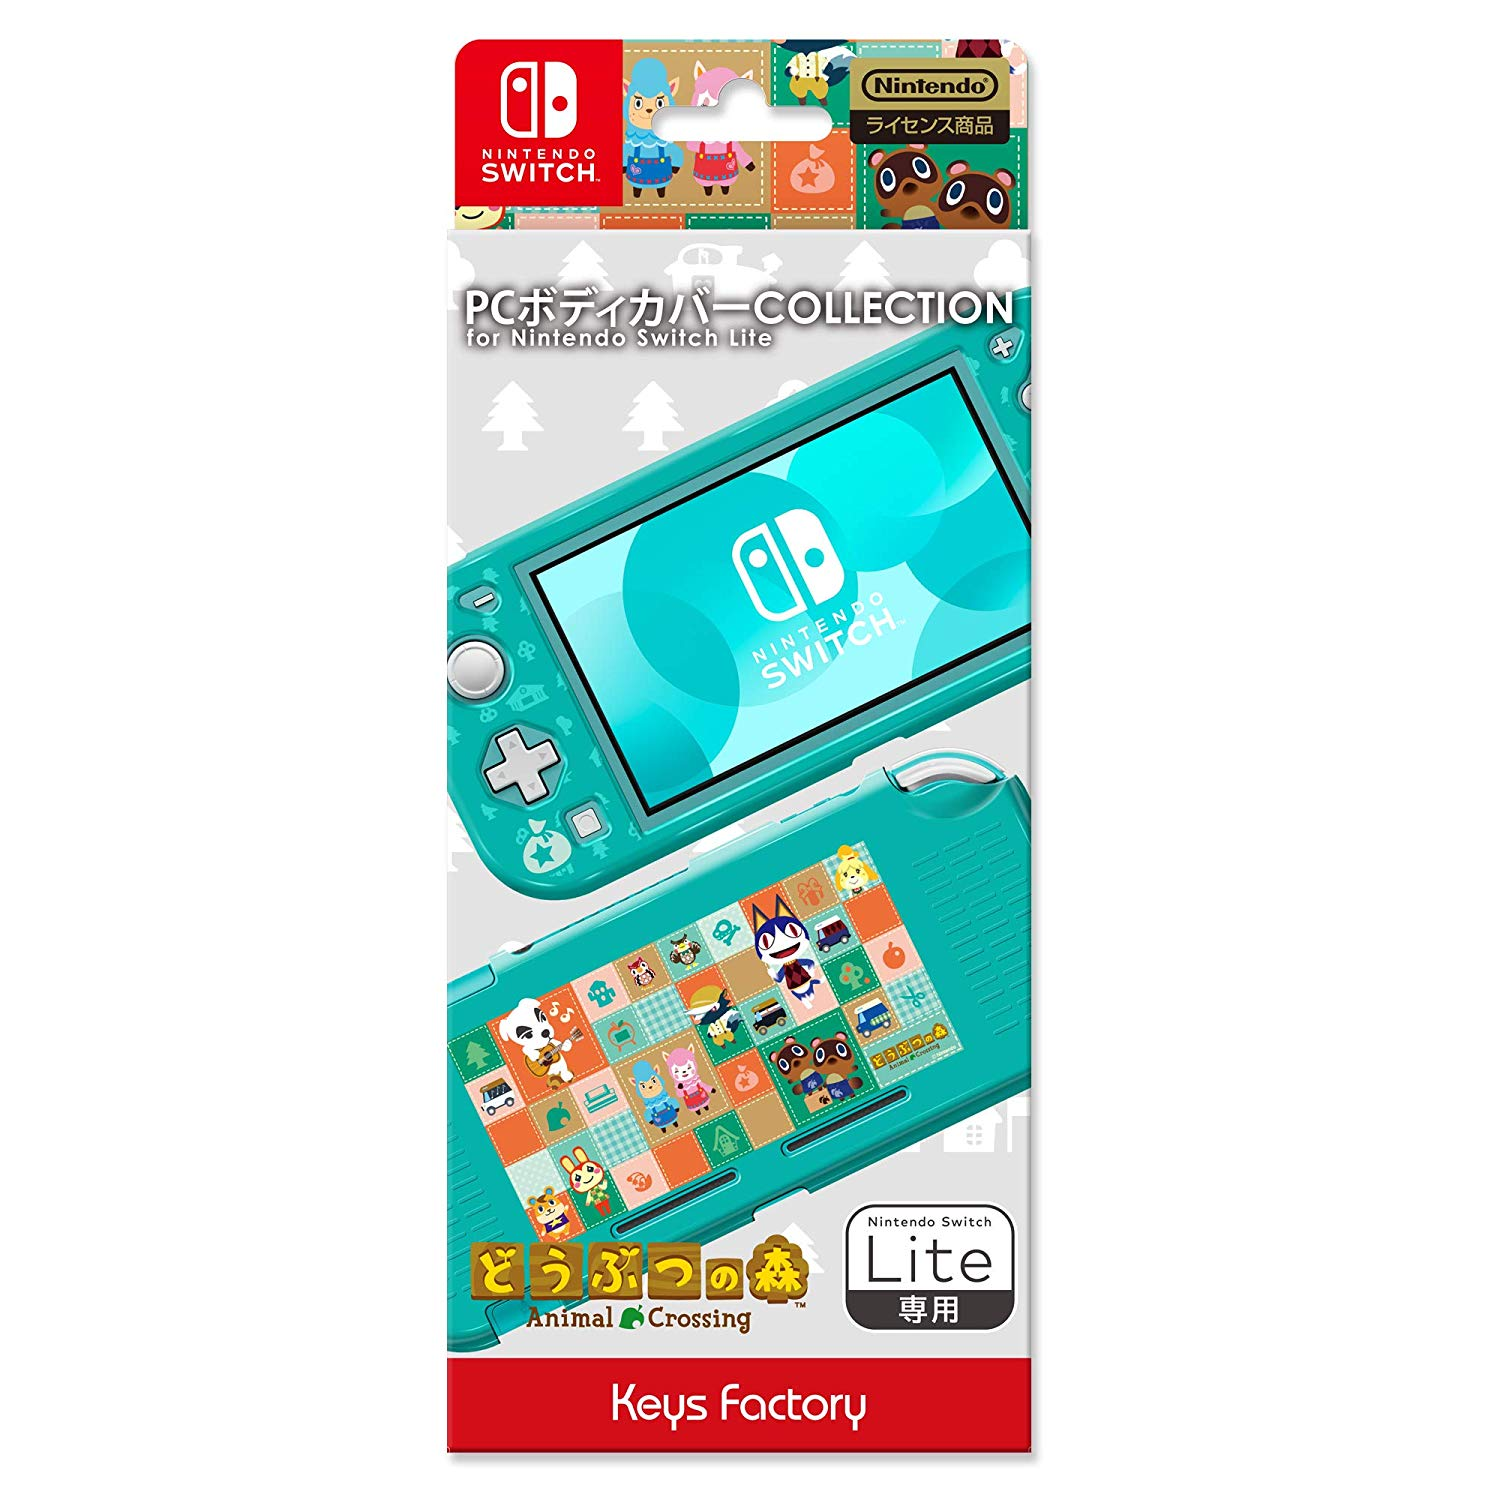 New Pc Body Cover Collection For Nintendo Switch Lite Animal Crossing Keys Factory Japan Apr 2020 Japan You Want